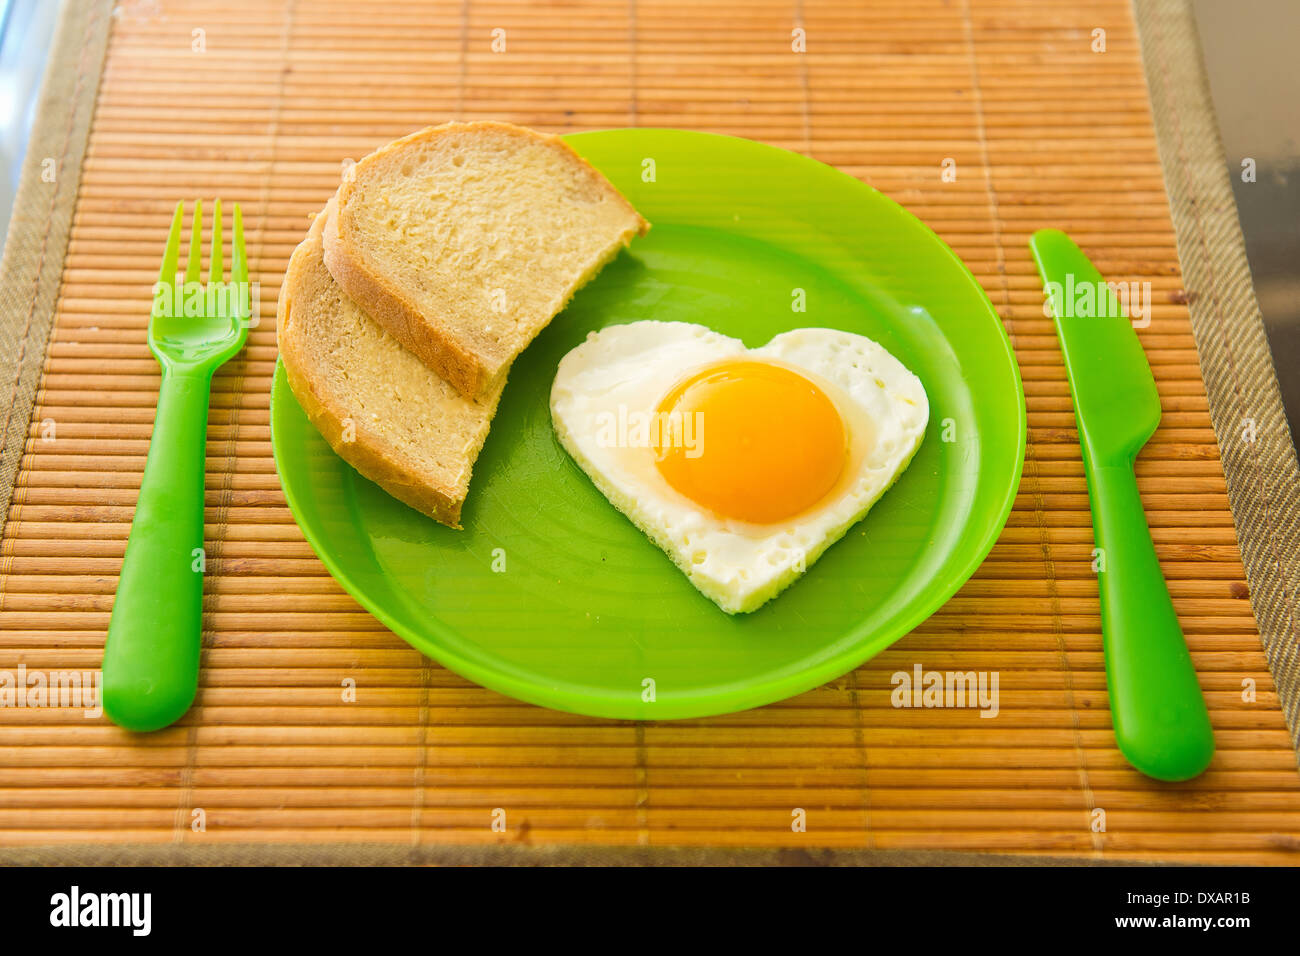 Fried egg in heart shape on green plastic plate - Stock Image